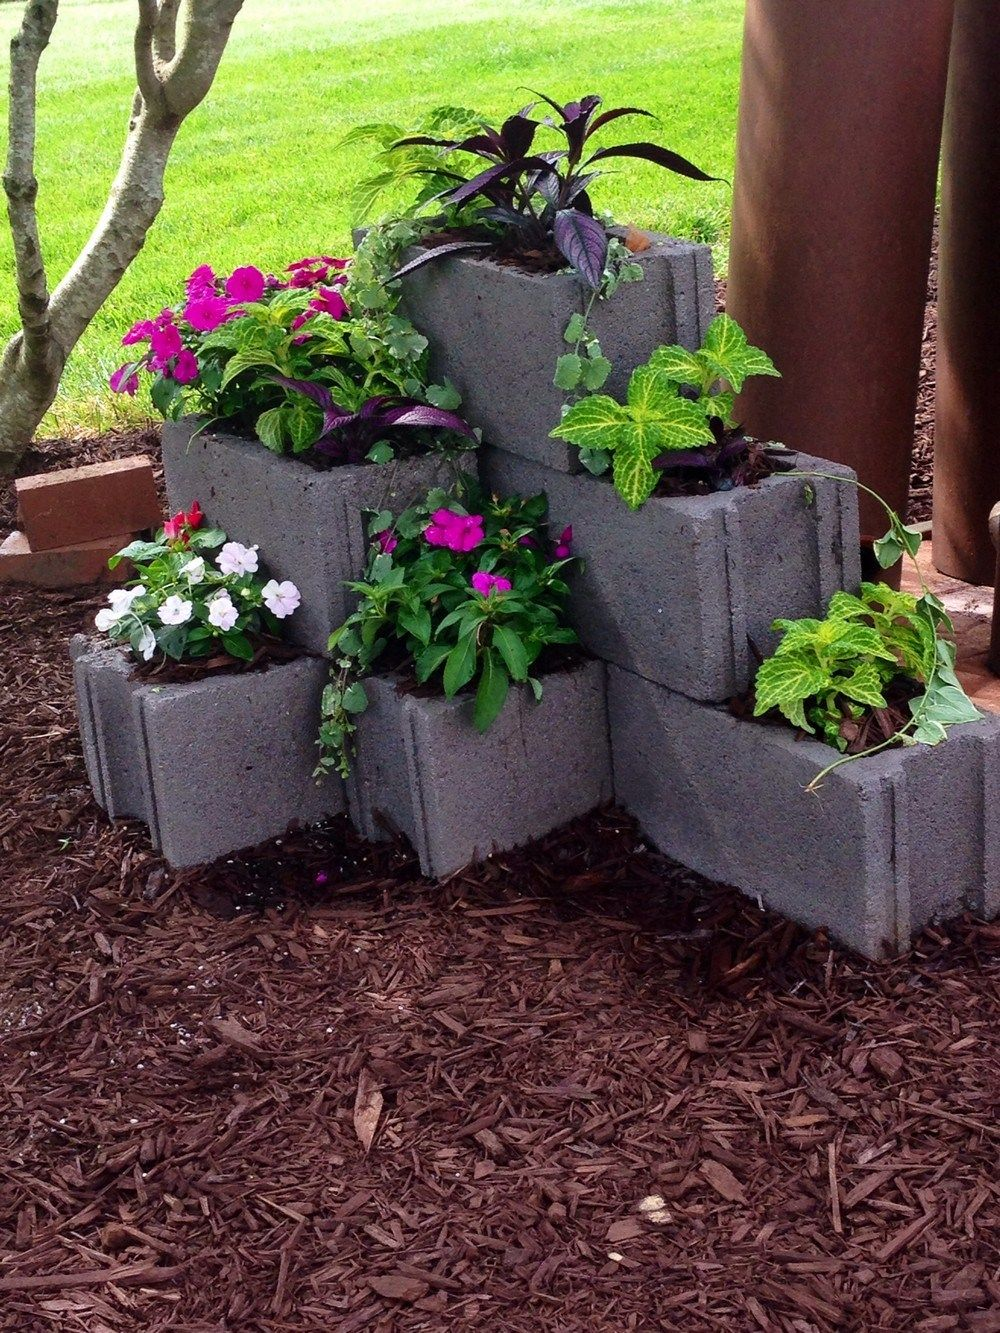 Cinder Block Ideas 120 Cinder Block Garden Garden Projects Front Yard Landscaping